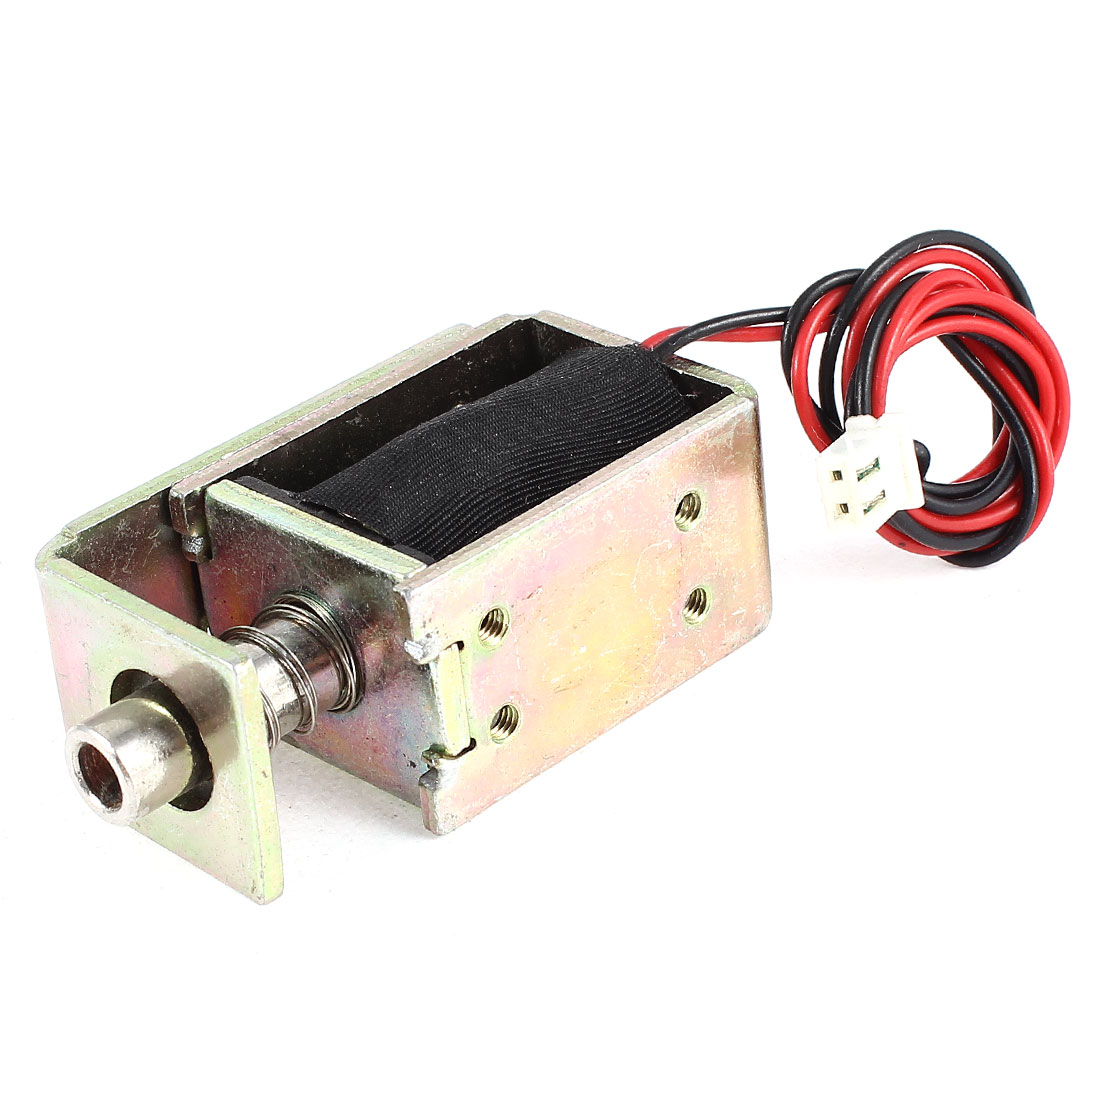 DC 12V 0.6A 6mm 200gf Pull Type Open Frame Linear Solenoid Electromagnet - image 2 of 2